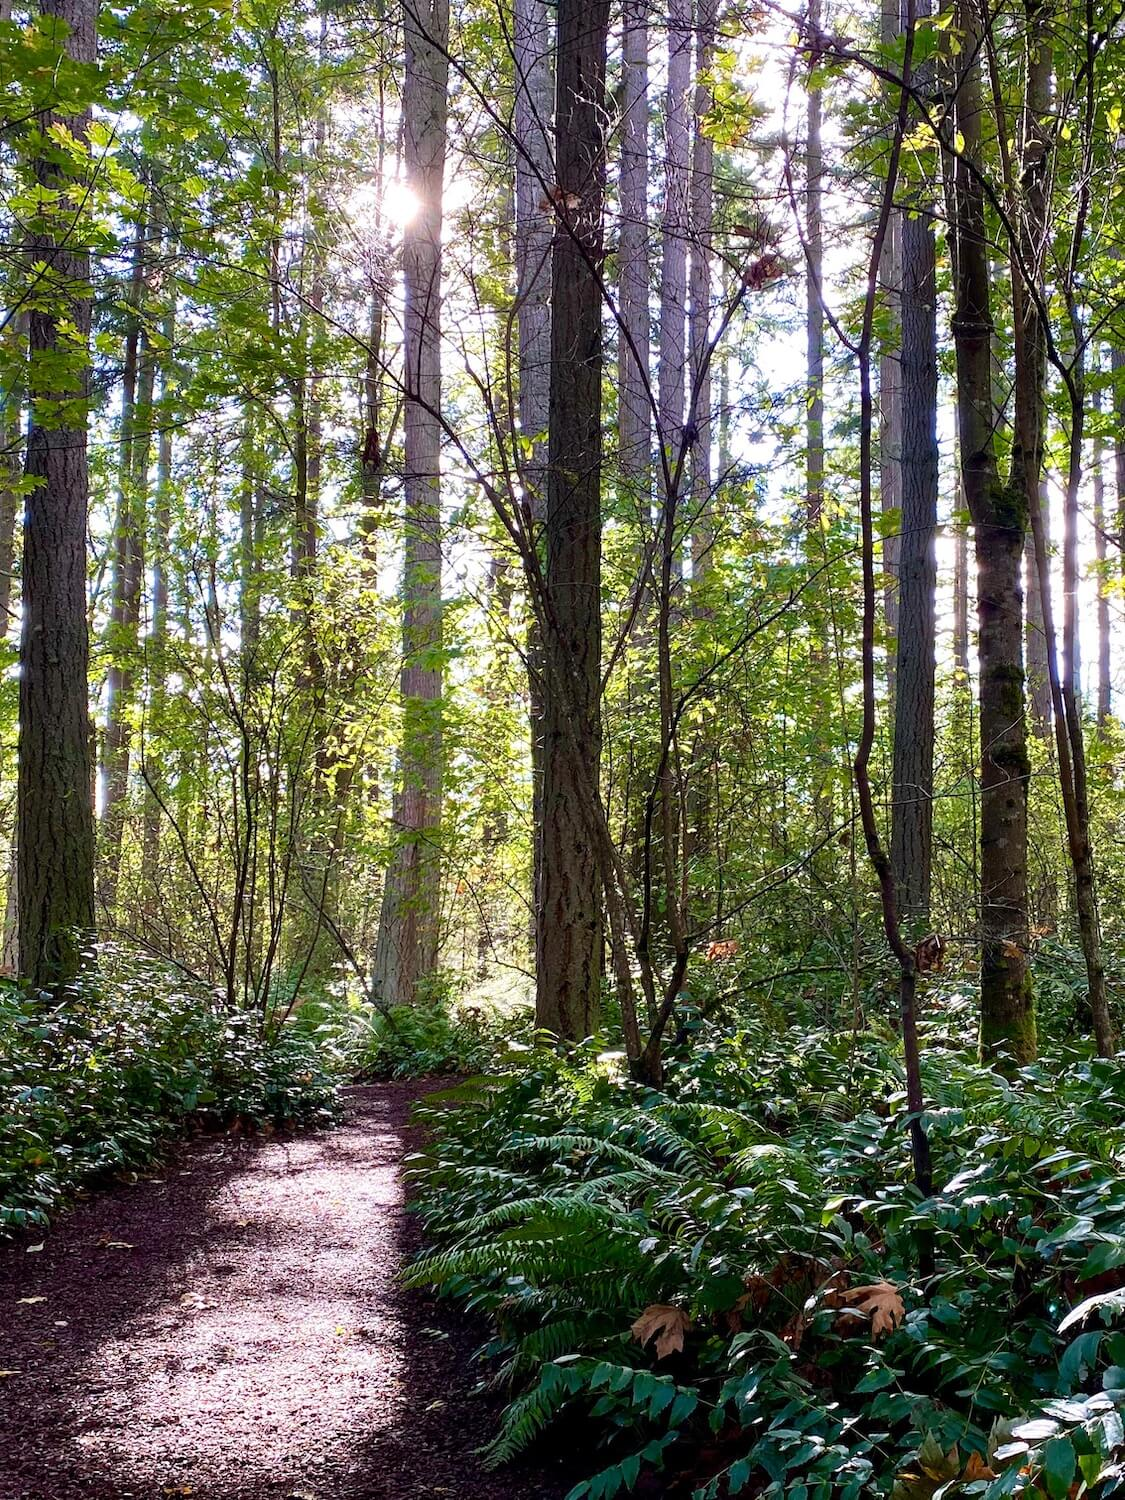 A ray of sunshine flows into this forest scene, with fir and maple trees reflecting the shining rays. A trail of brown wood chips reflects the sun while low brush of sword fern and salal fill in the rest of the forest floor.